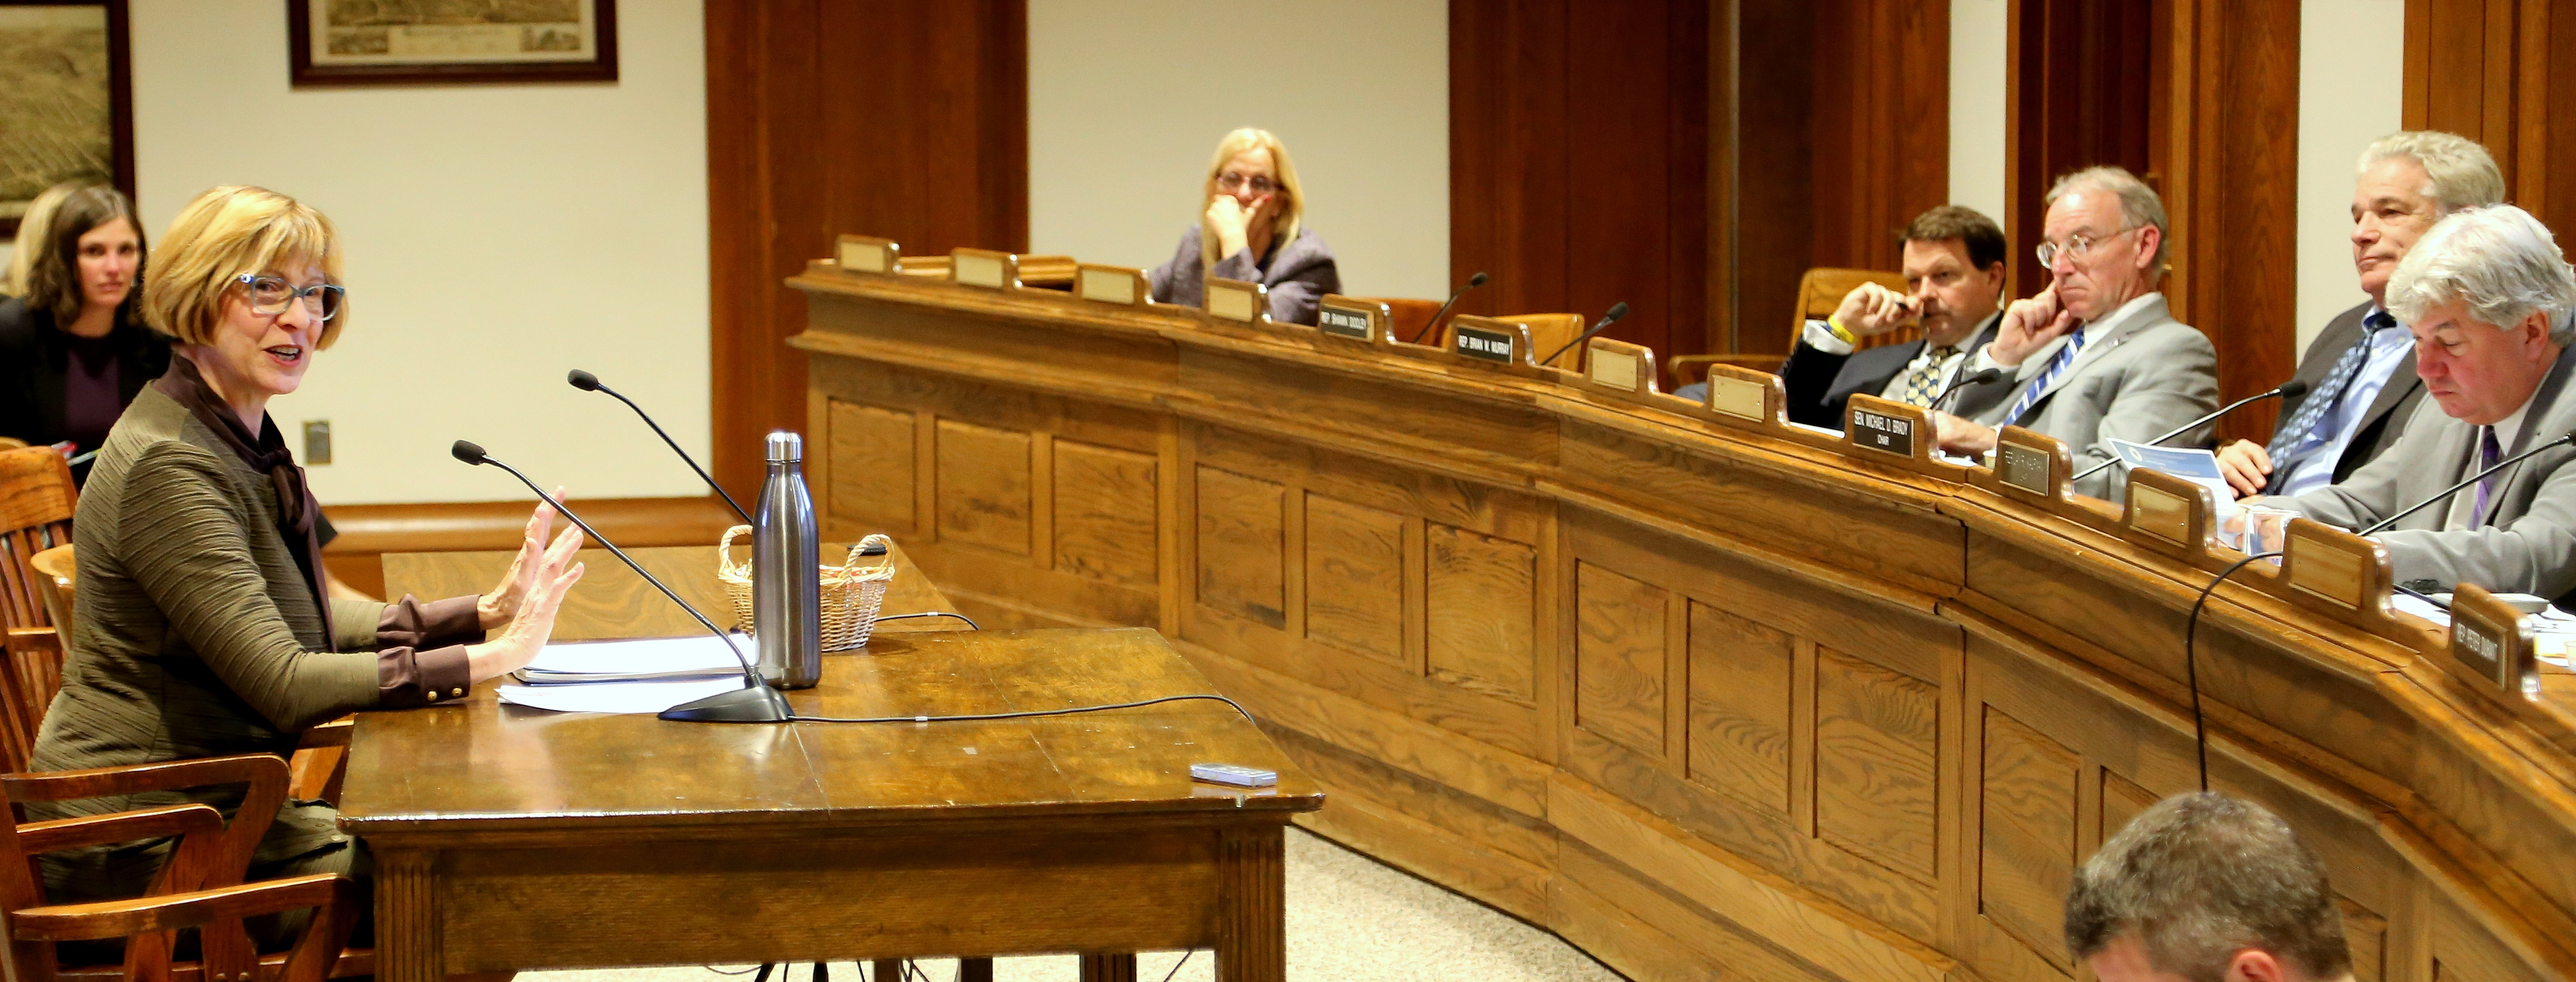 Auditor Bump testifies before the Joint Committee on Revenue about a measure she introduced - H. 4061 during a hearing in October 2017.